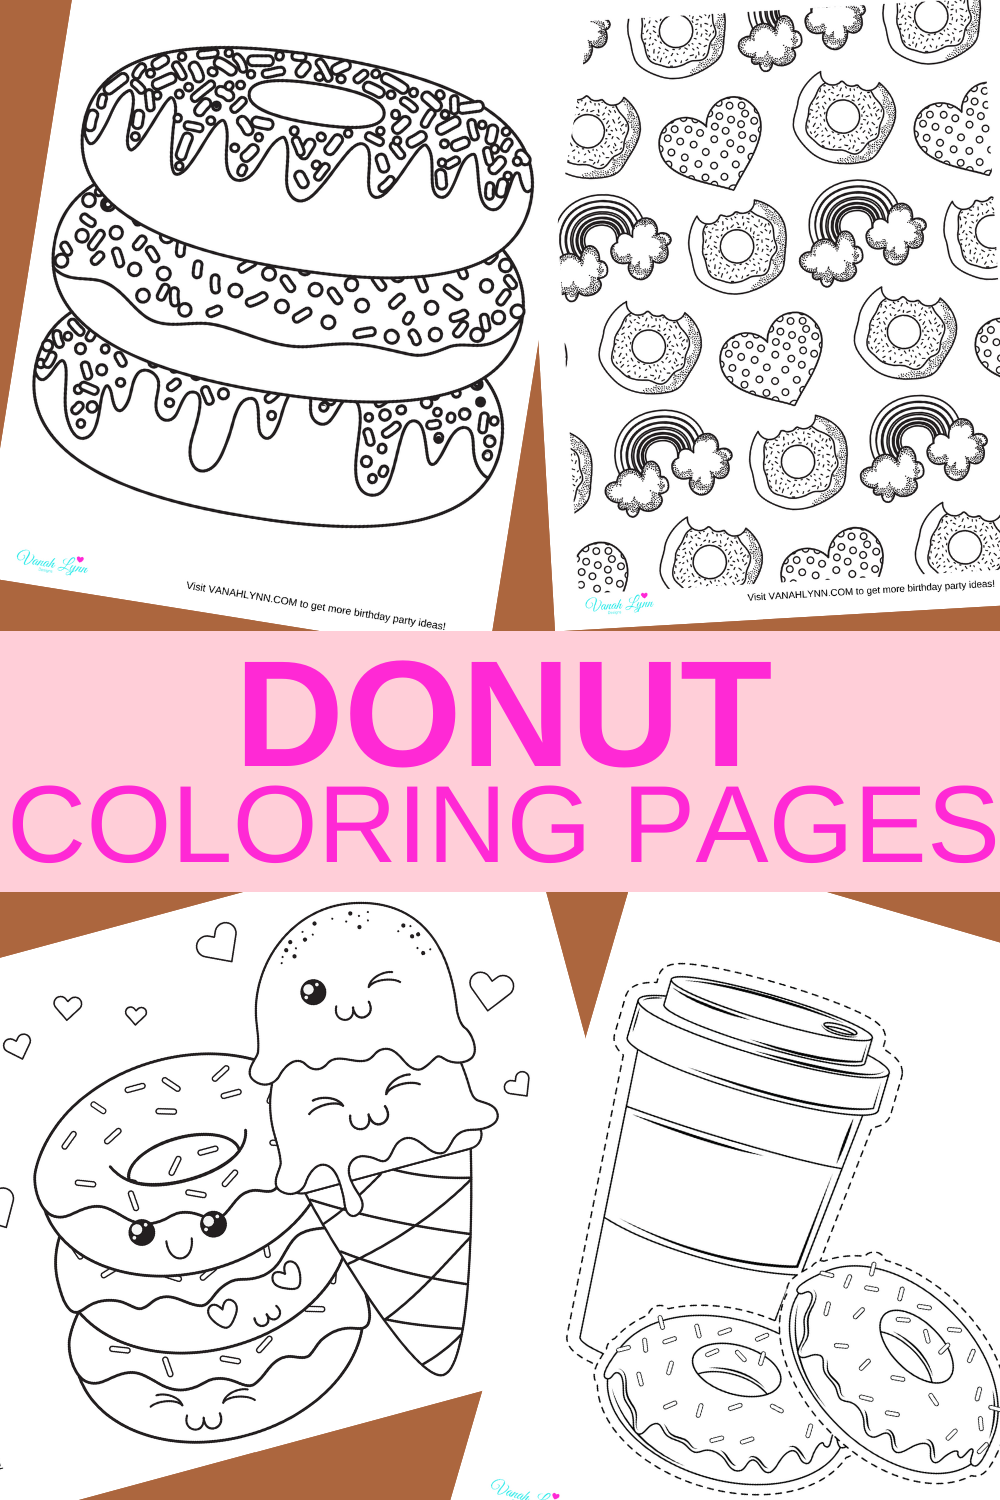 10 free downloads: donut coloring sheets for kids